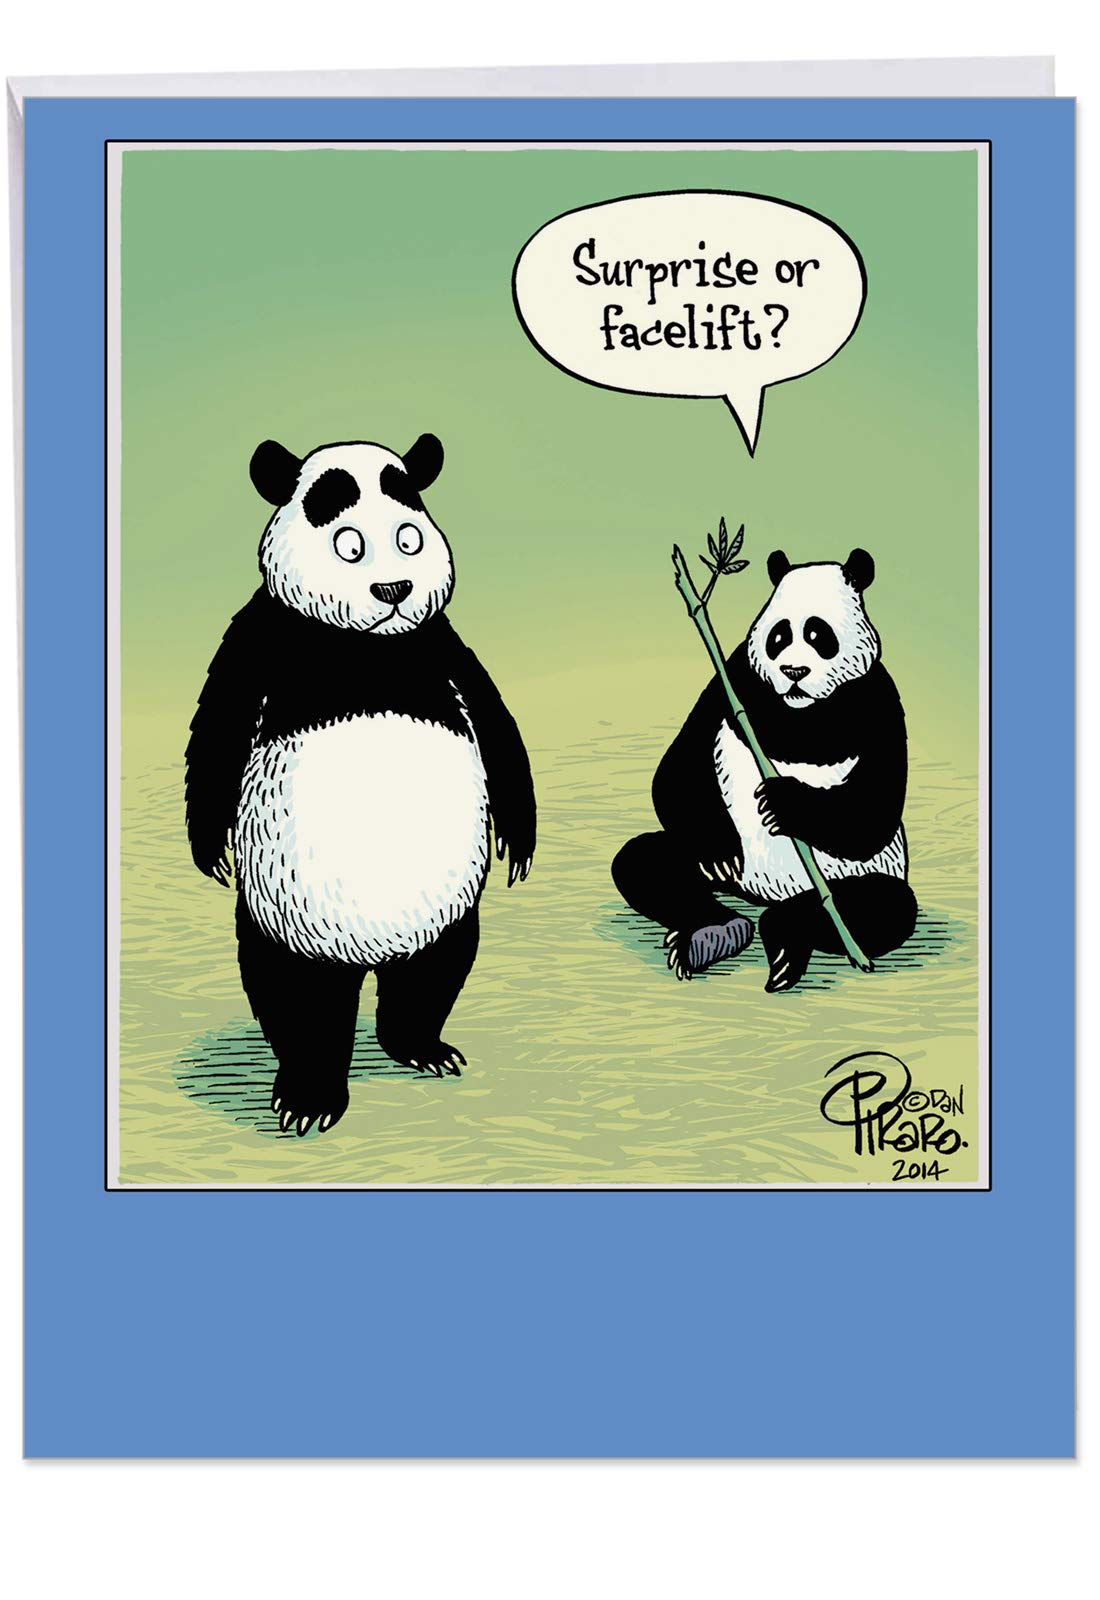 Surprise or Facelift Birthday Card' Big Greeting Card with Envelope 8.5 x 11 Inch - Surprised Panda Bears, Funny Cartoon, Comic Art Stationery Set for Personalized Happy Birthday Greetings J9768